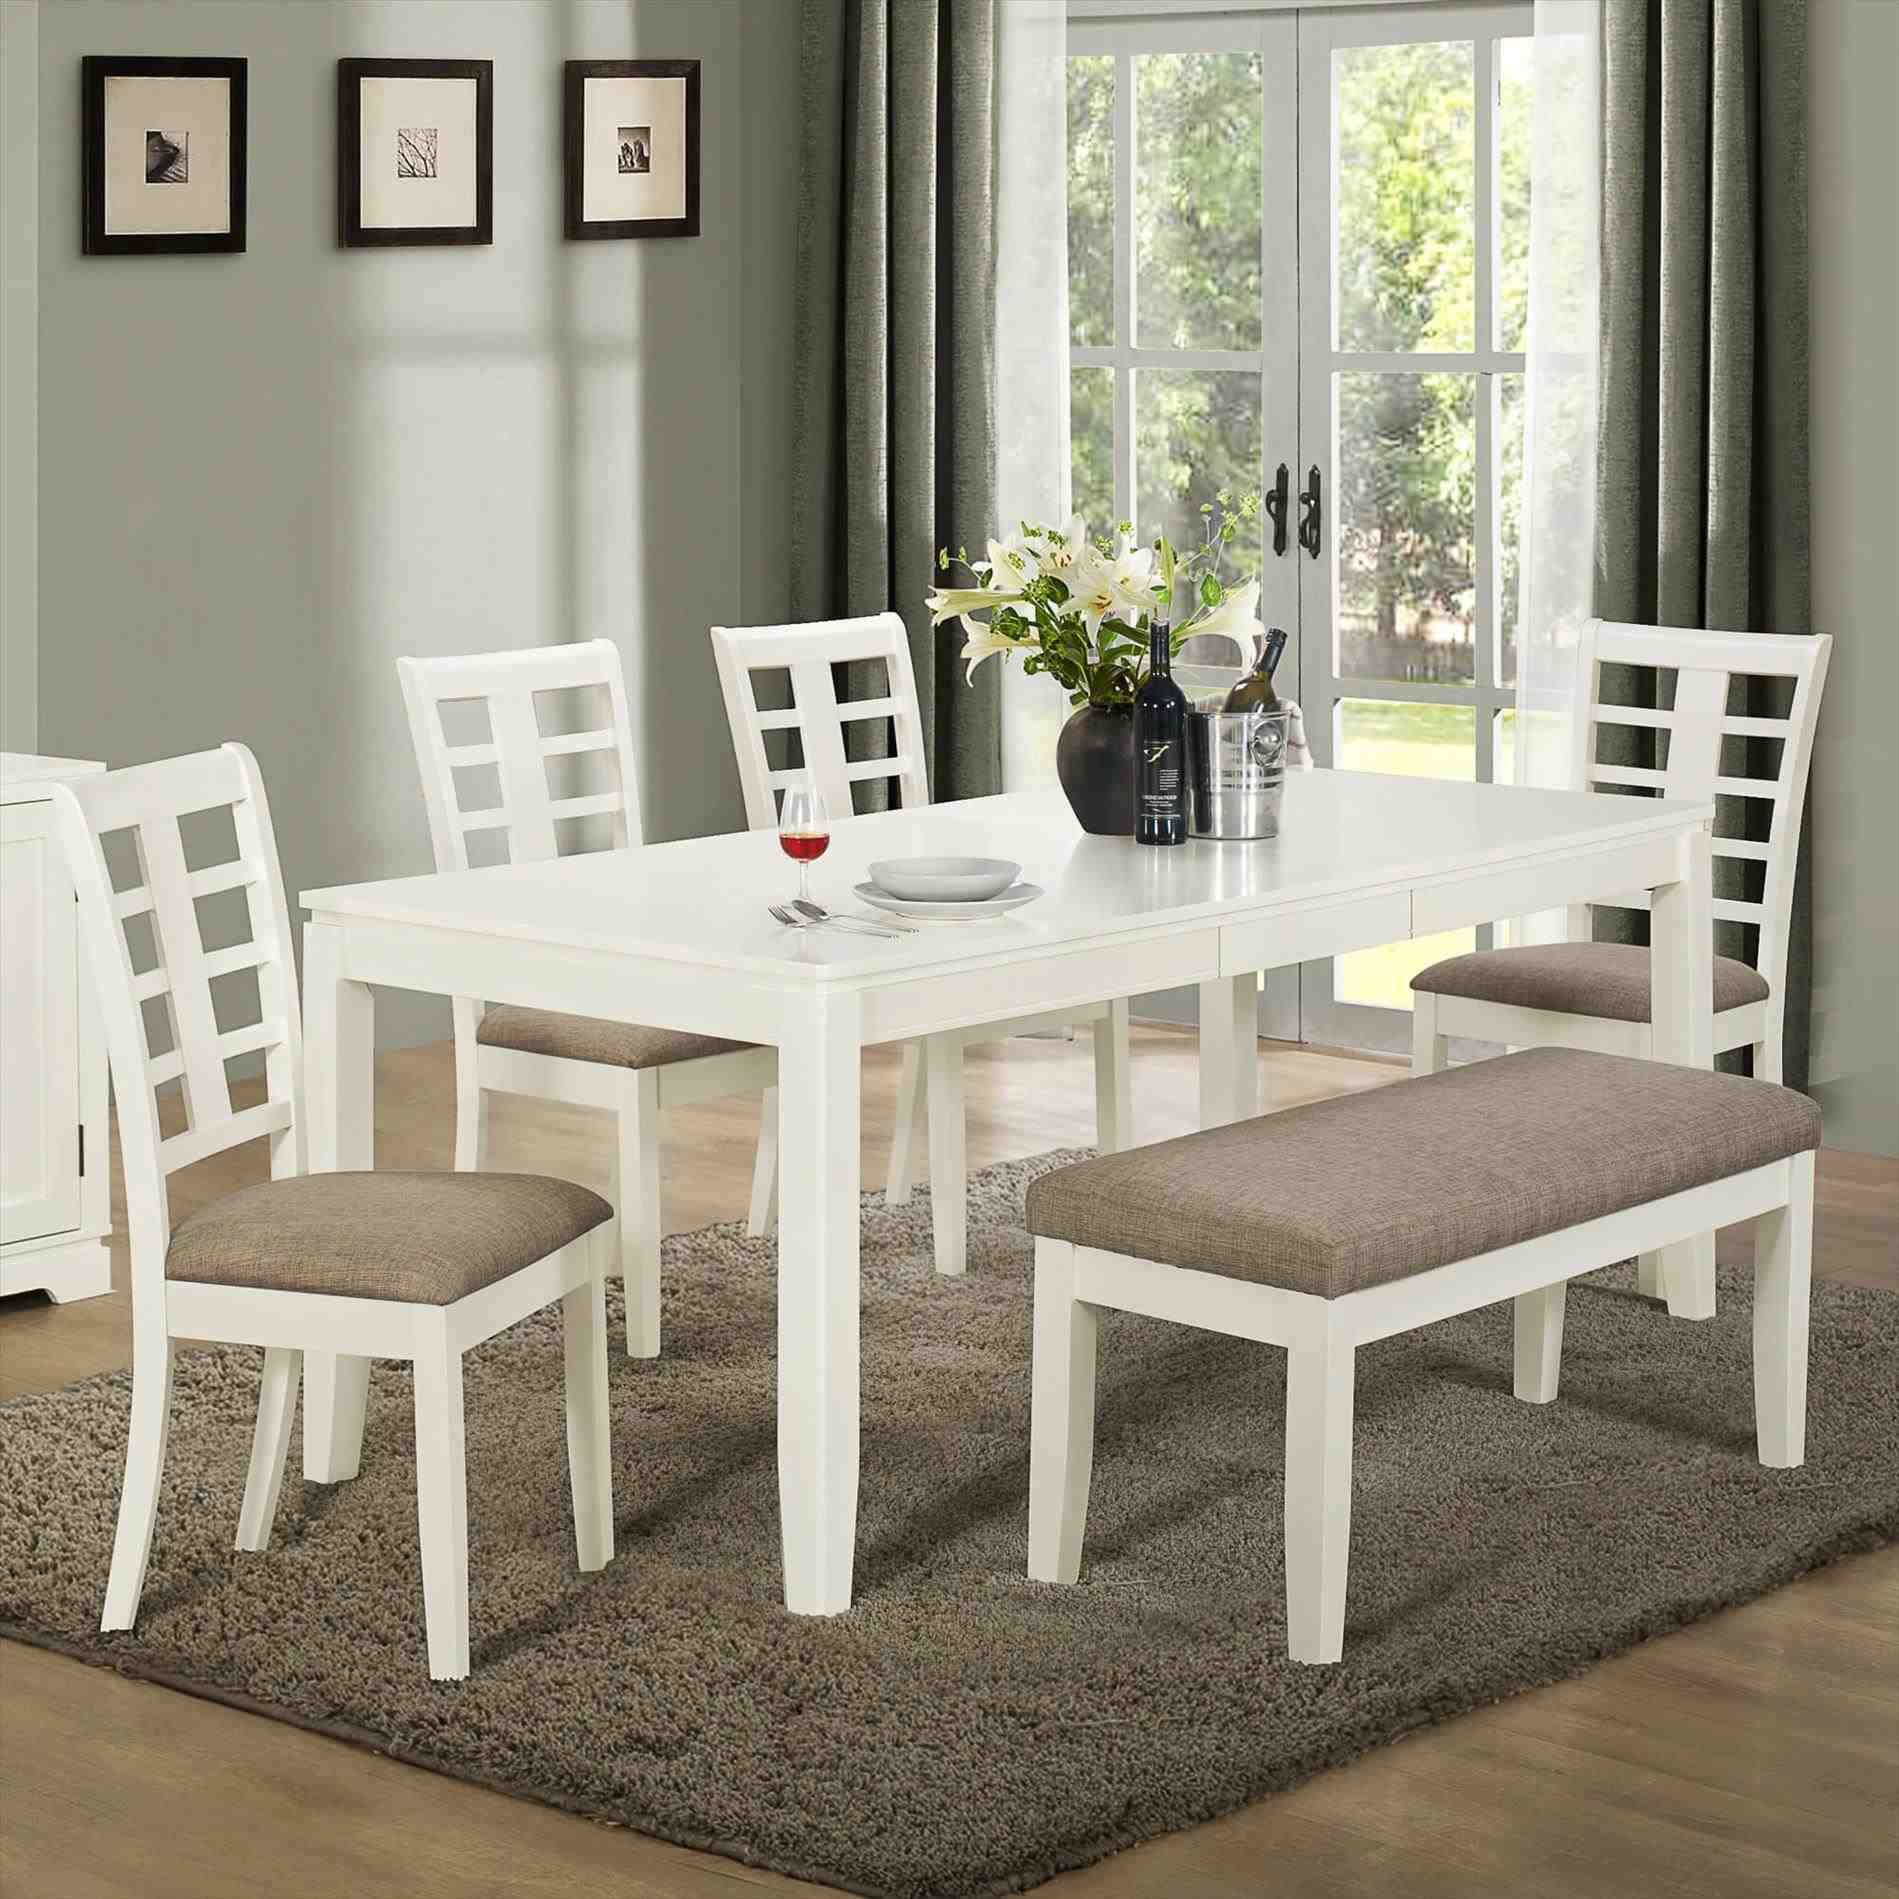 New Post Small Kitchen Table With Bench And Chairs Decors Ideas